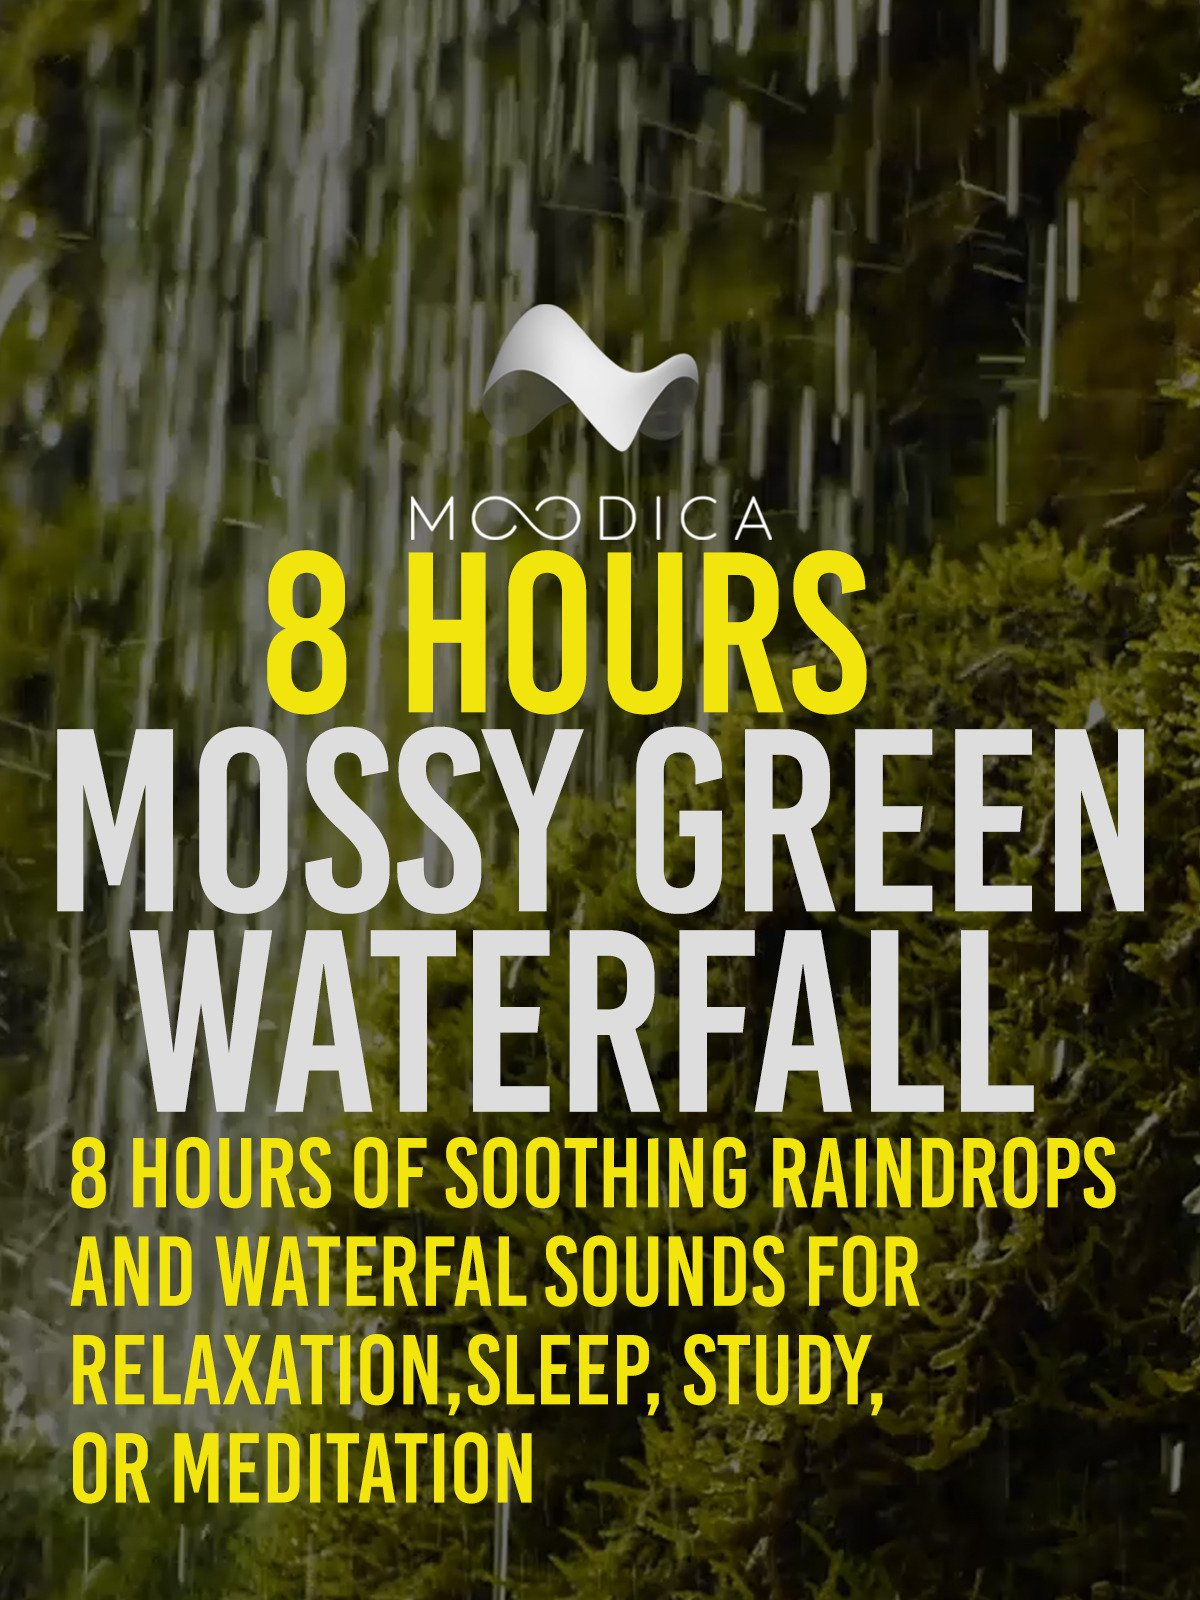 8 Hours: Mossy Green Waterfall: 8 Hours of Soothing Raindrops and Waterfall Sounds for Relaxation, Sleep, Study, or Meditation